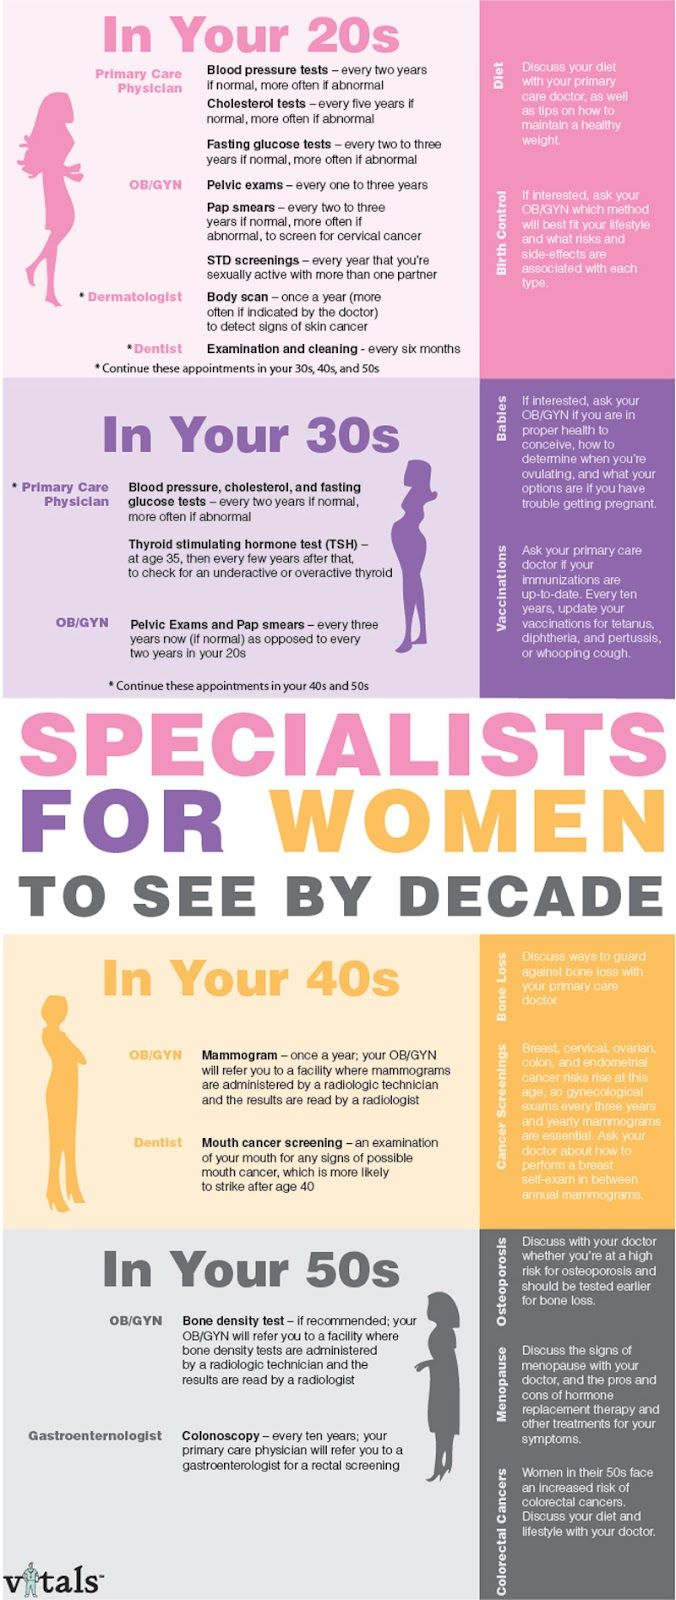 THE MARTINI CHRONICLES: Specialists Women Should See in Their 20s, 30s, 40s and 50s